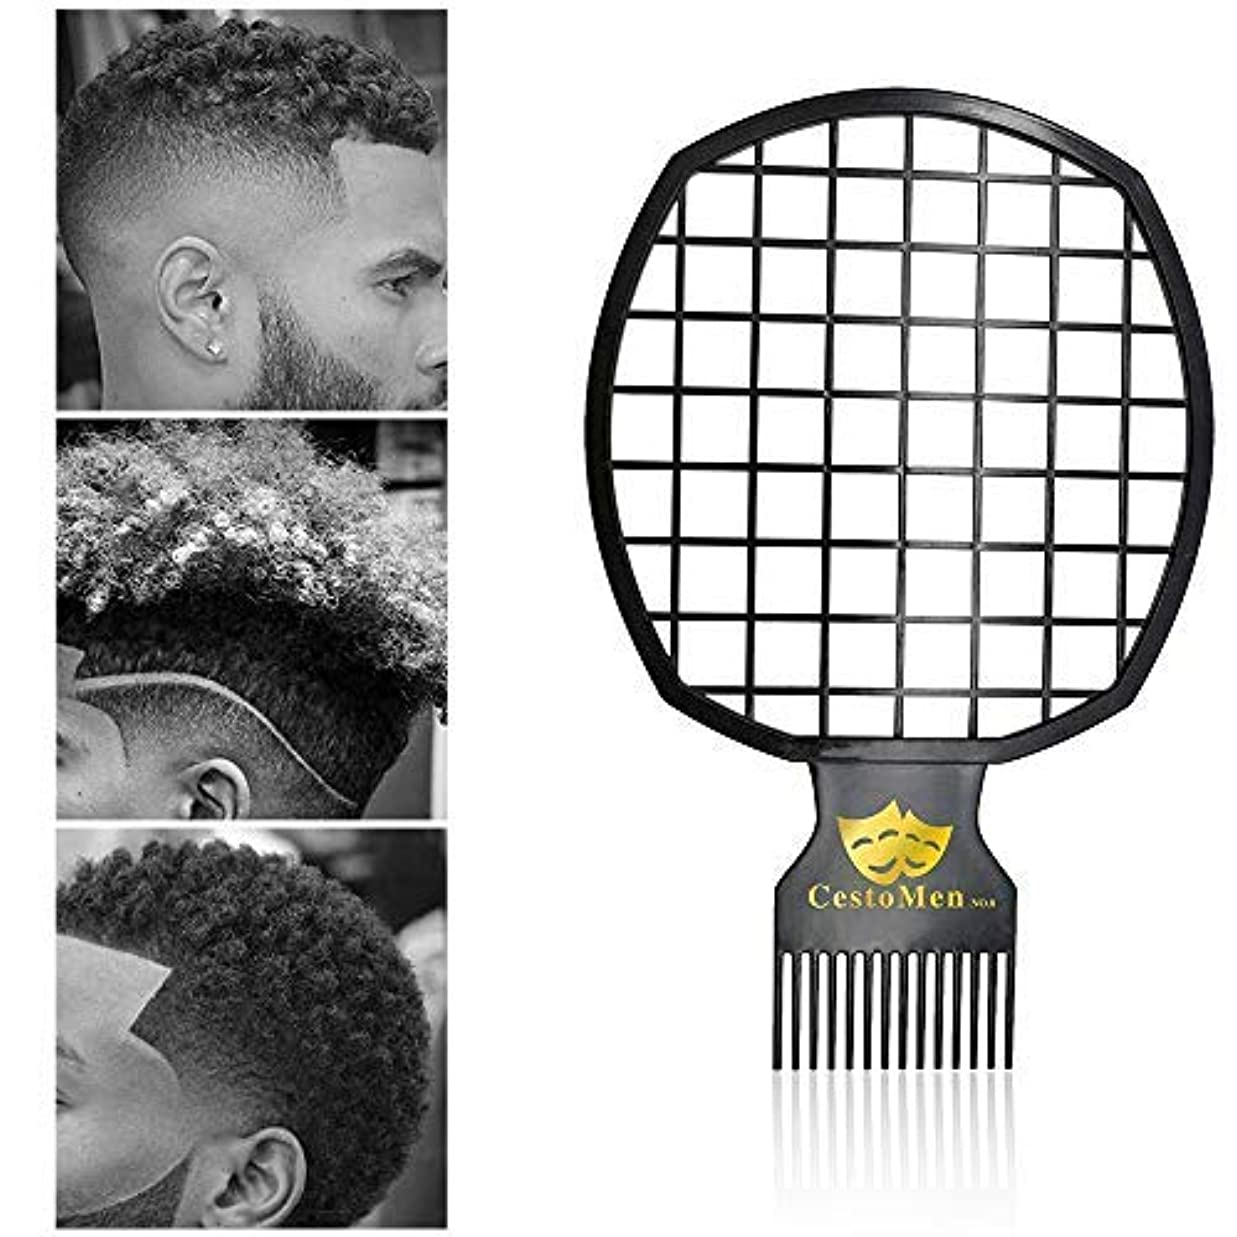 Afro Twist Comb Portable Two-In-One Hair Comb for Natural Twists Curls Coils Dreads Hair Styling Tool for Black...